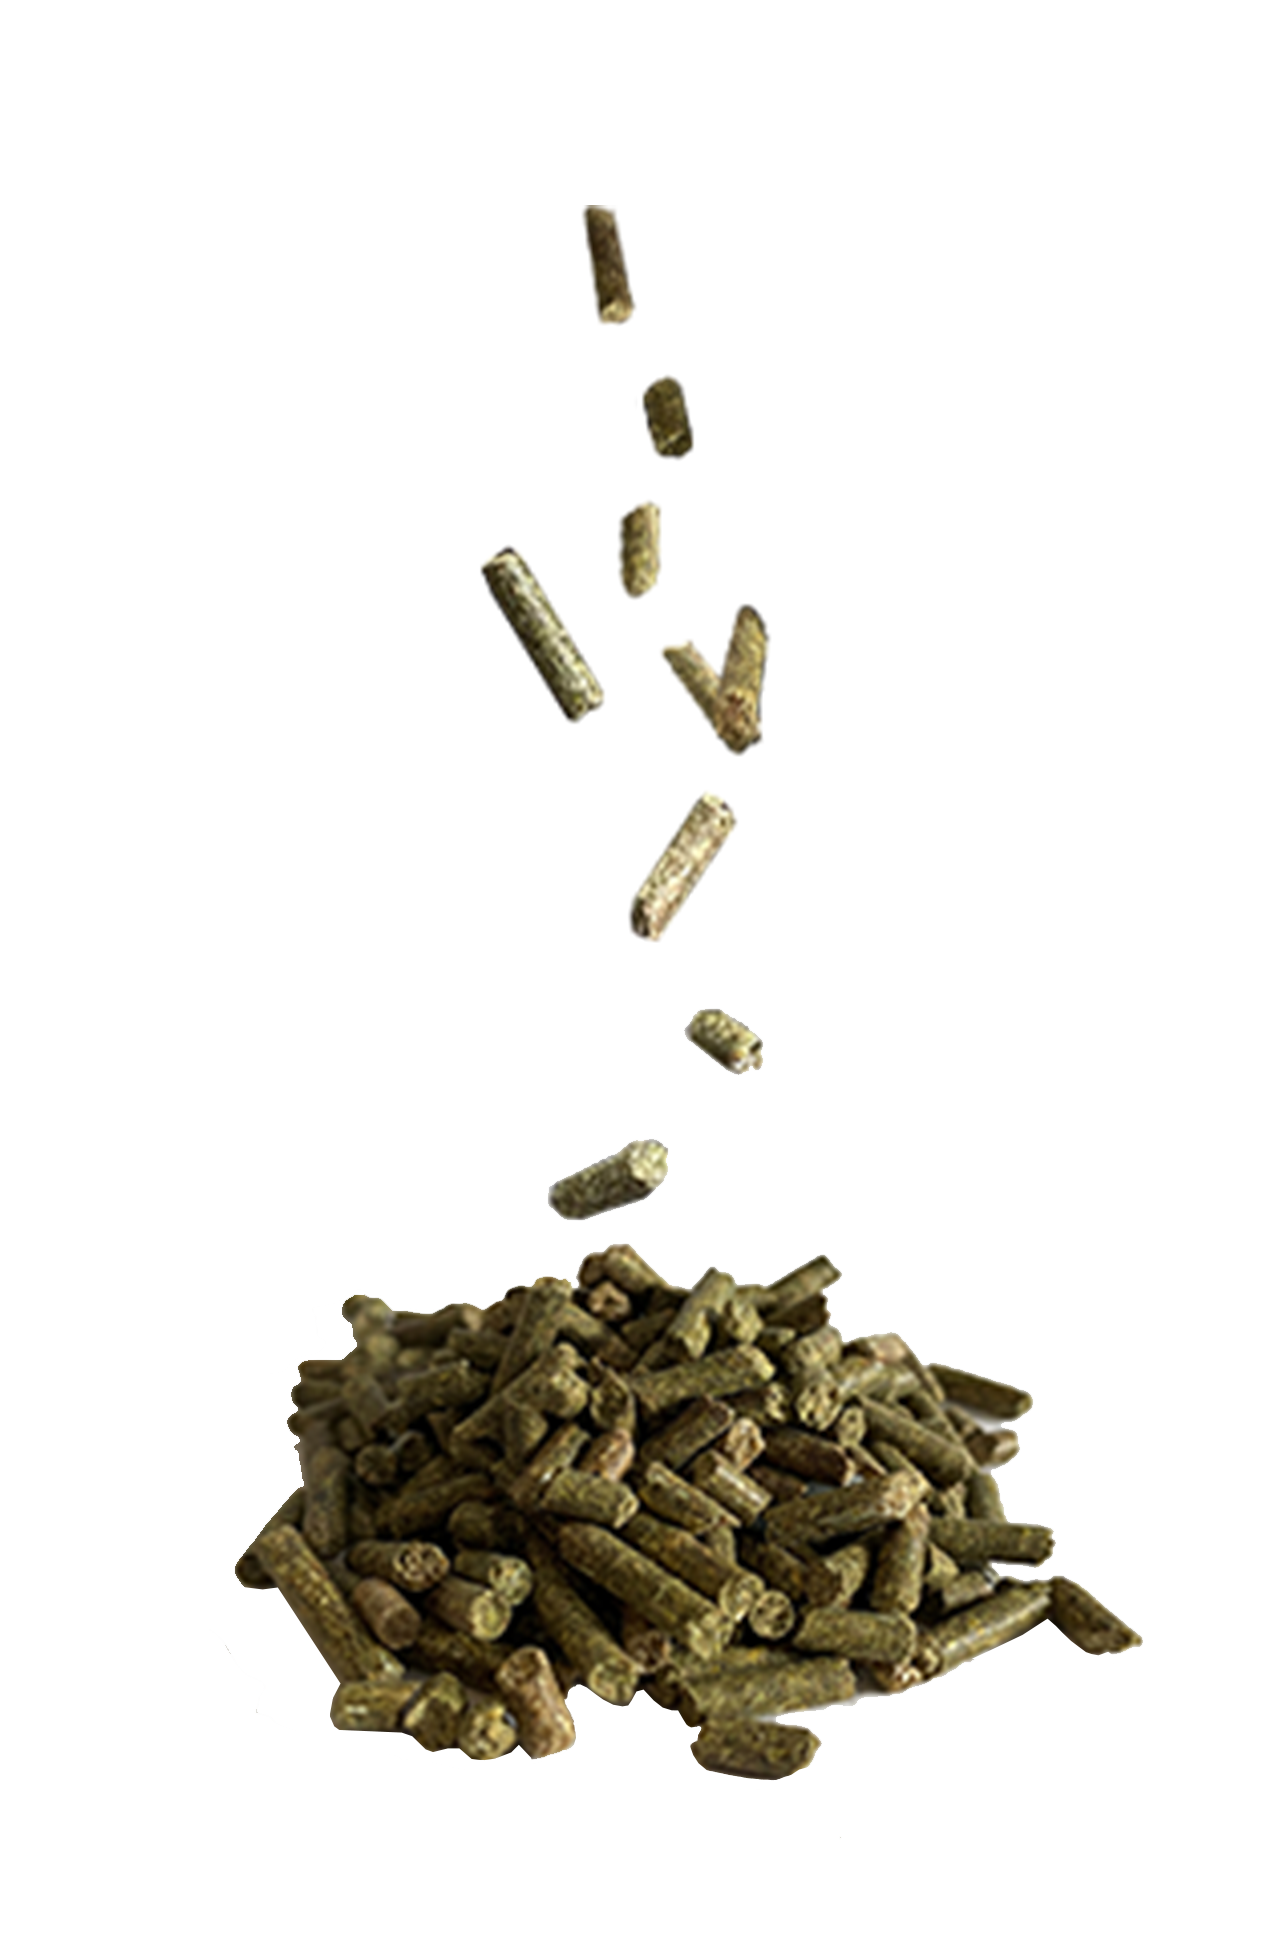 green pellets falling into a pile